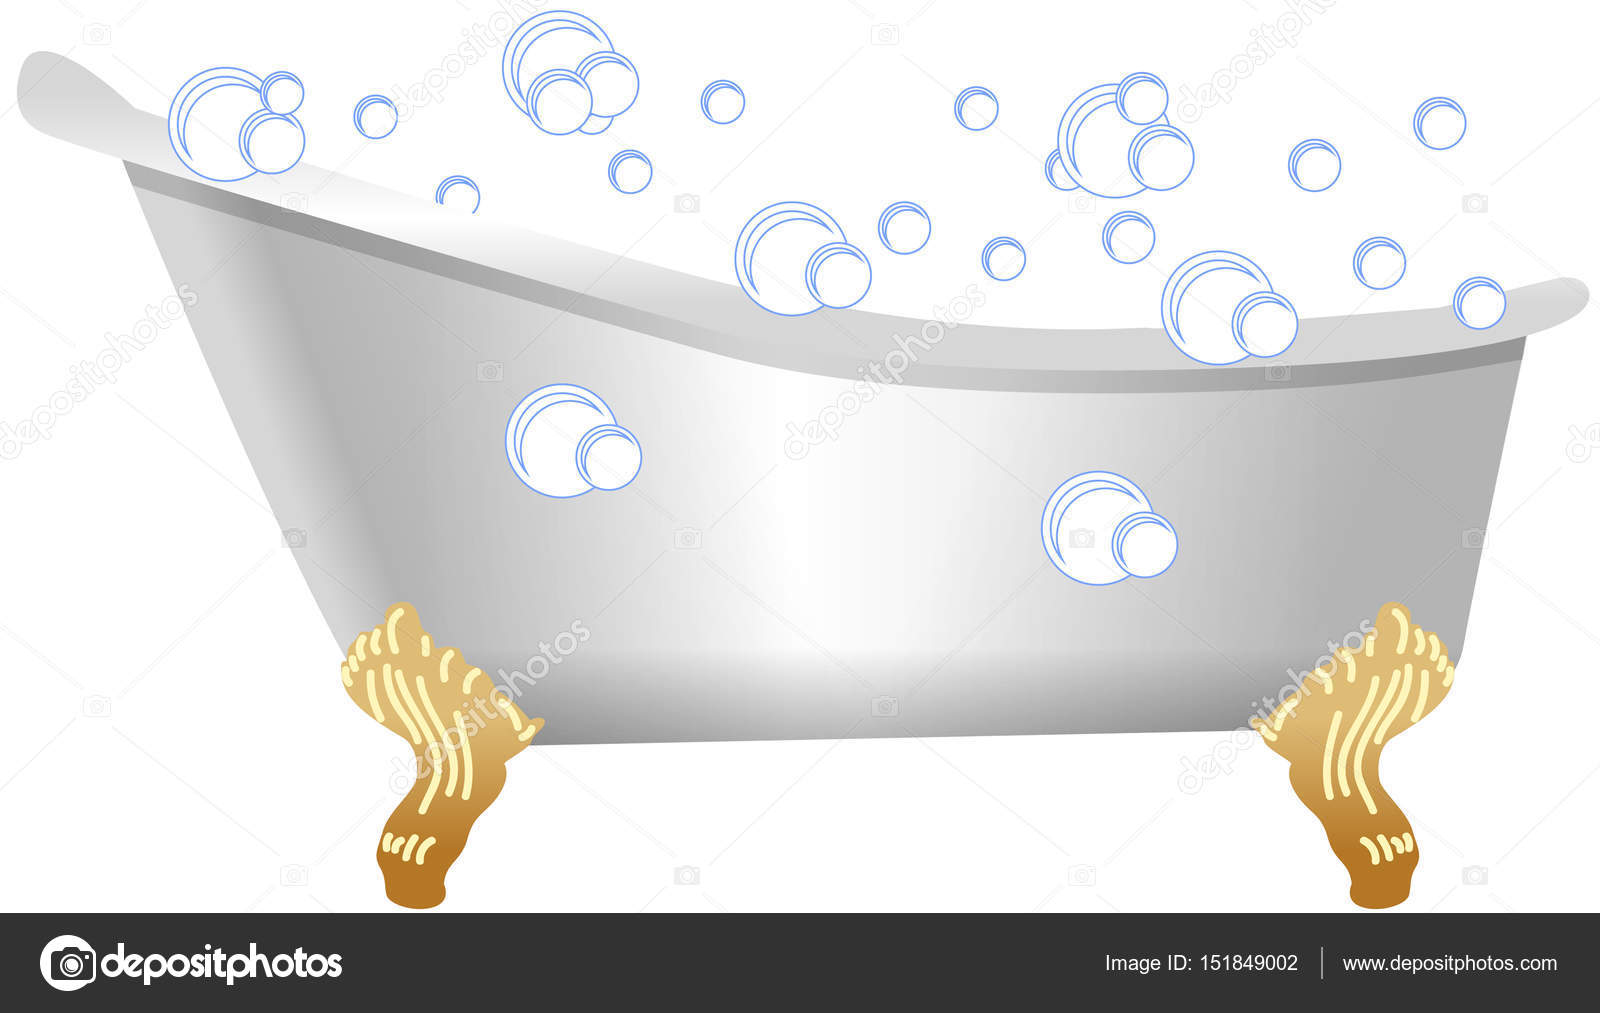 Old fashioned bath with bubbles — Stock Photo © jamesstar #151849002